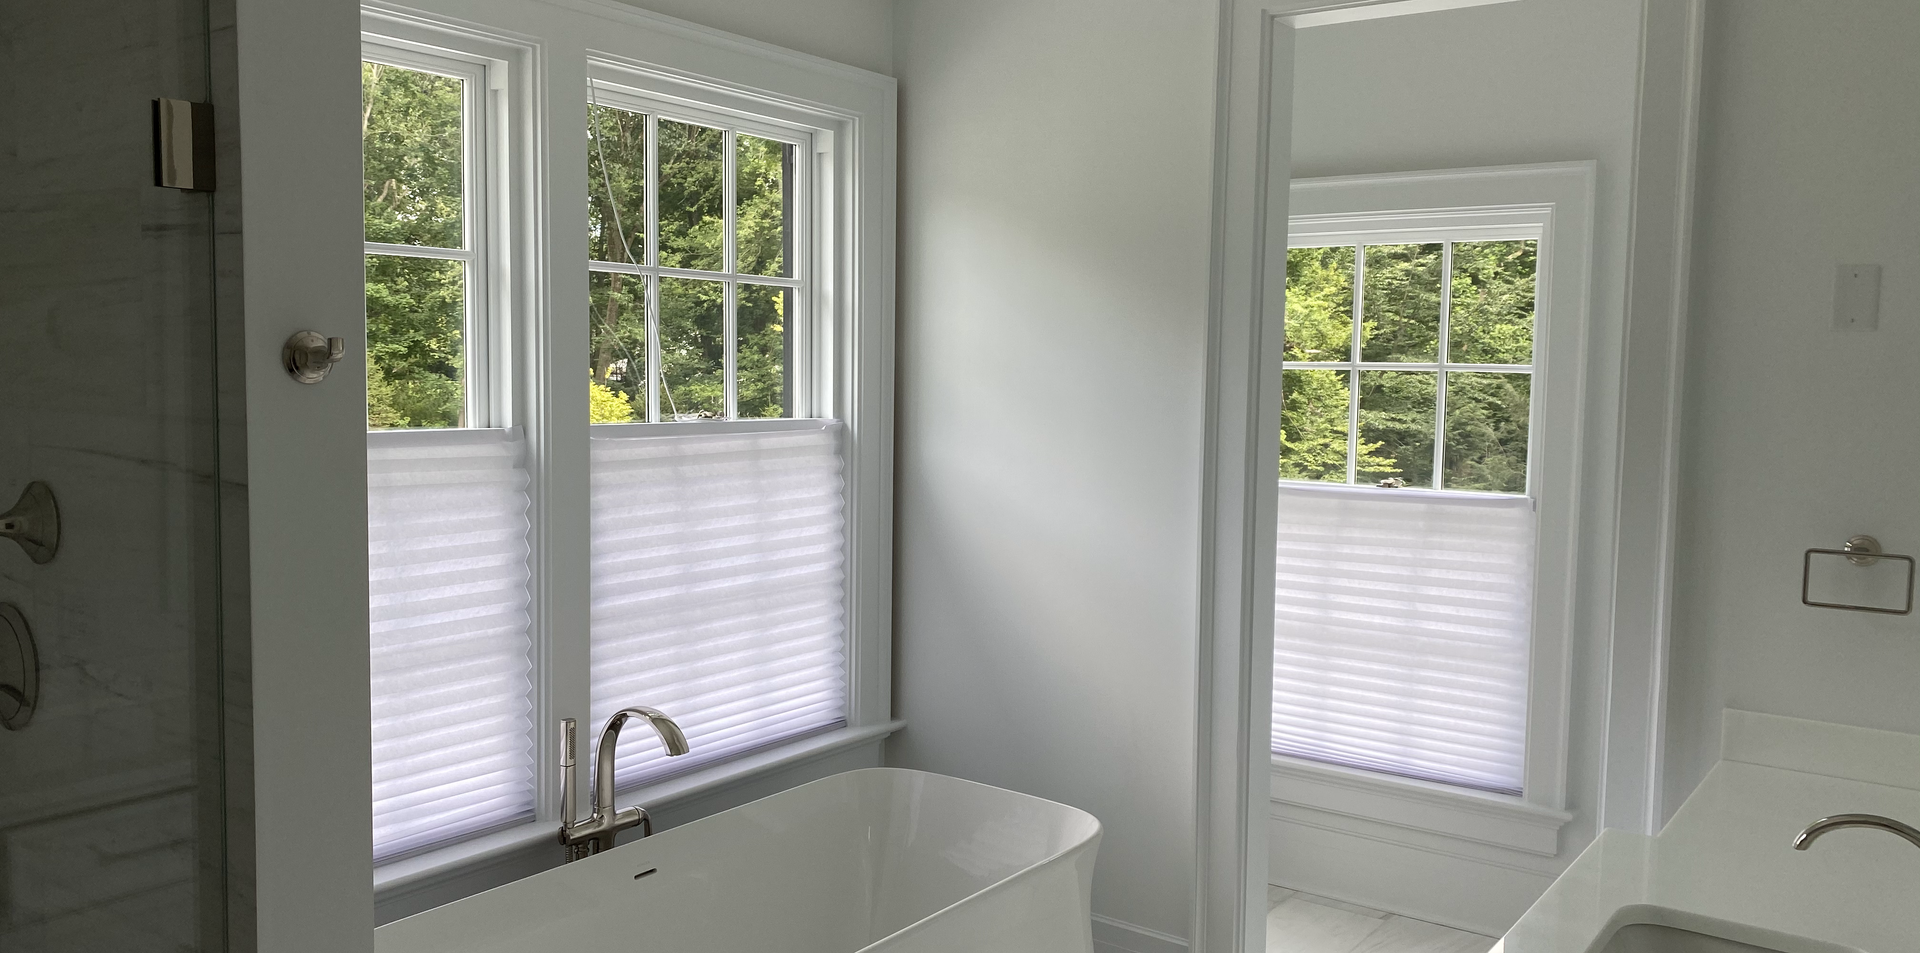 Simple Shades in Wash Room